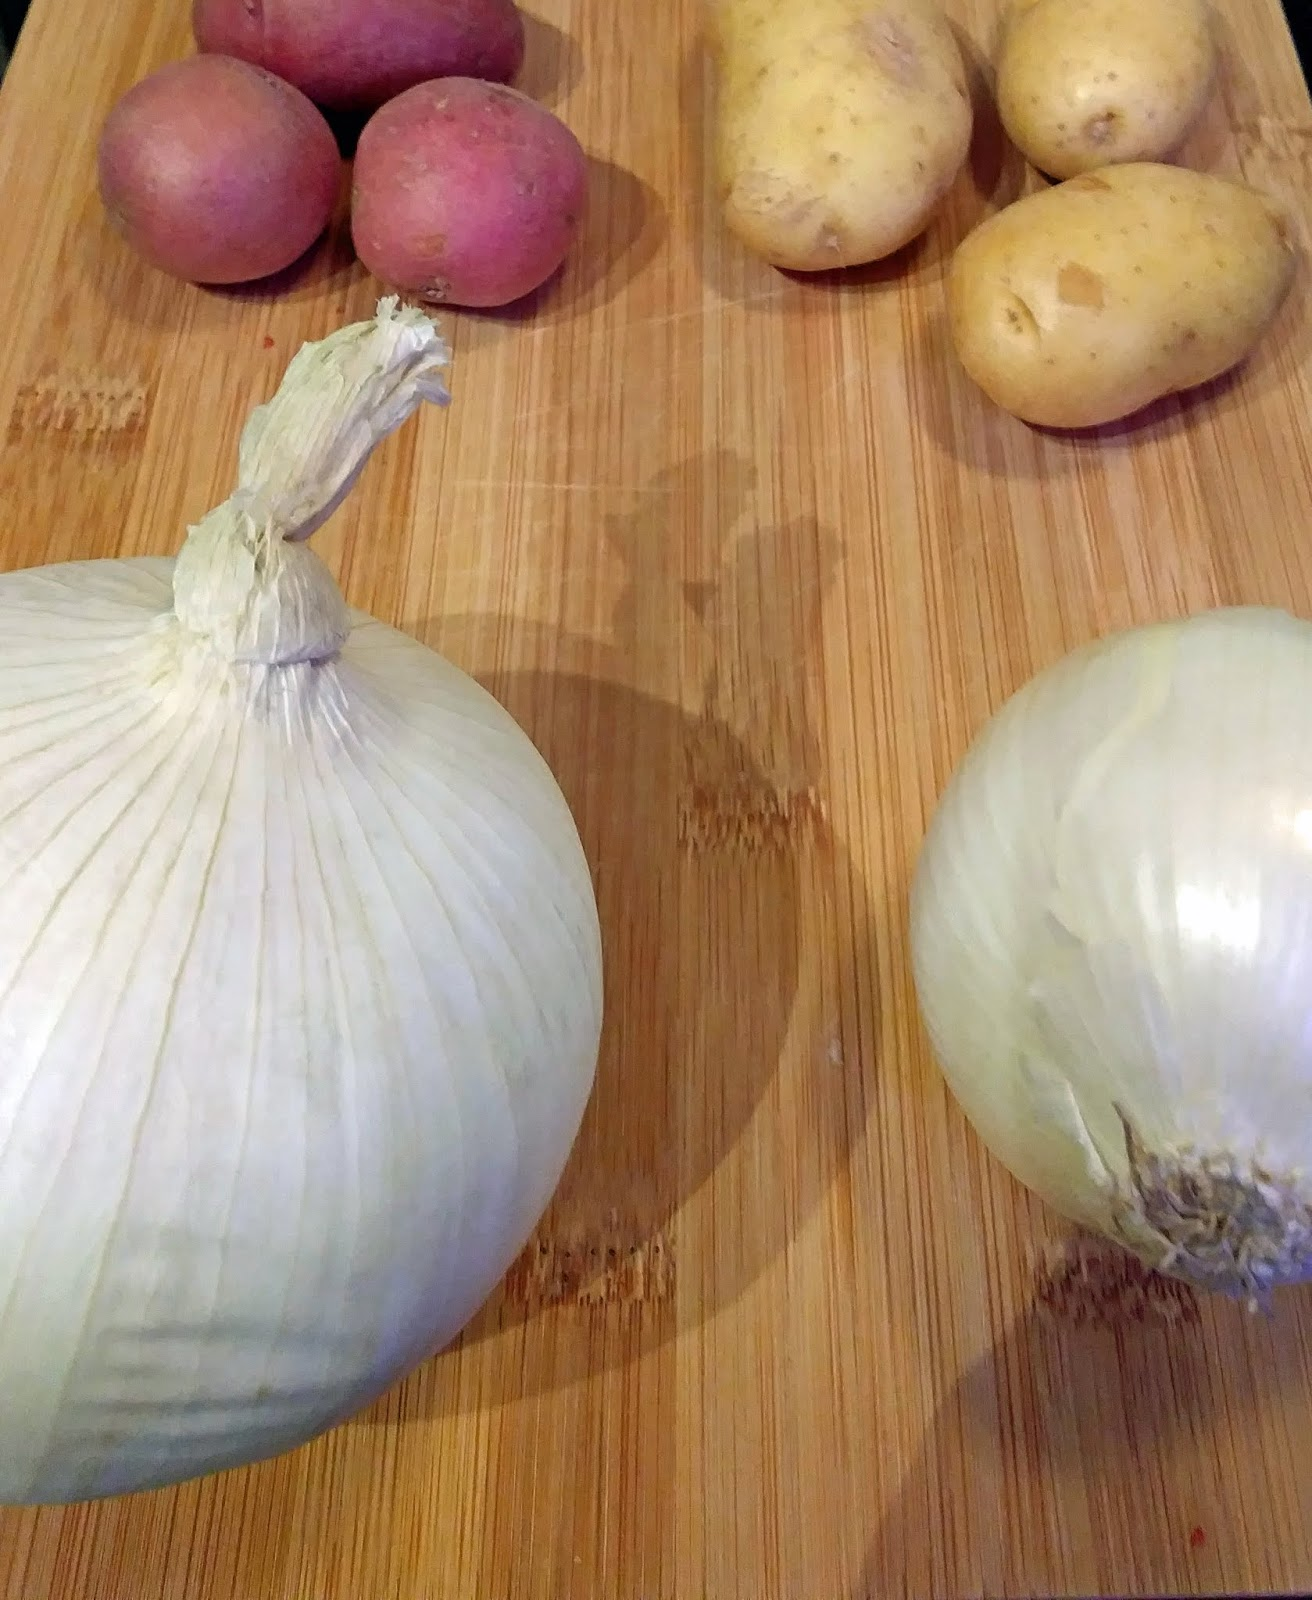 Keep Your Onions And Potatoes Separate